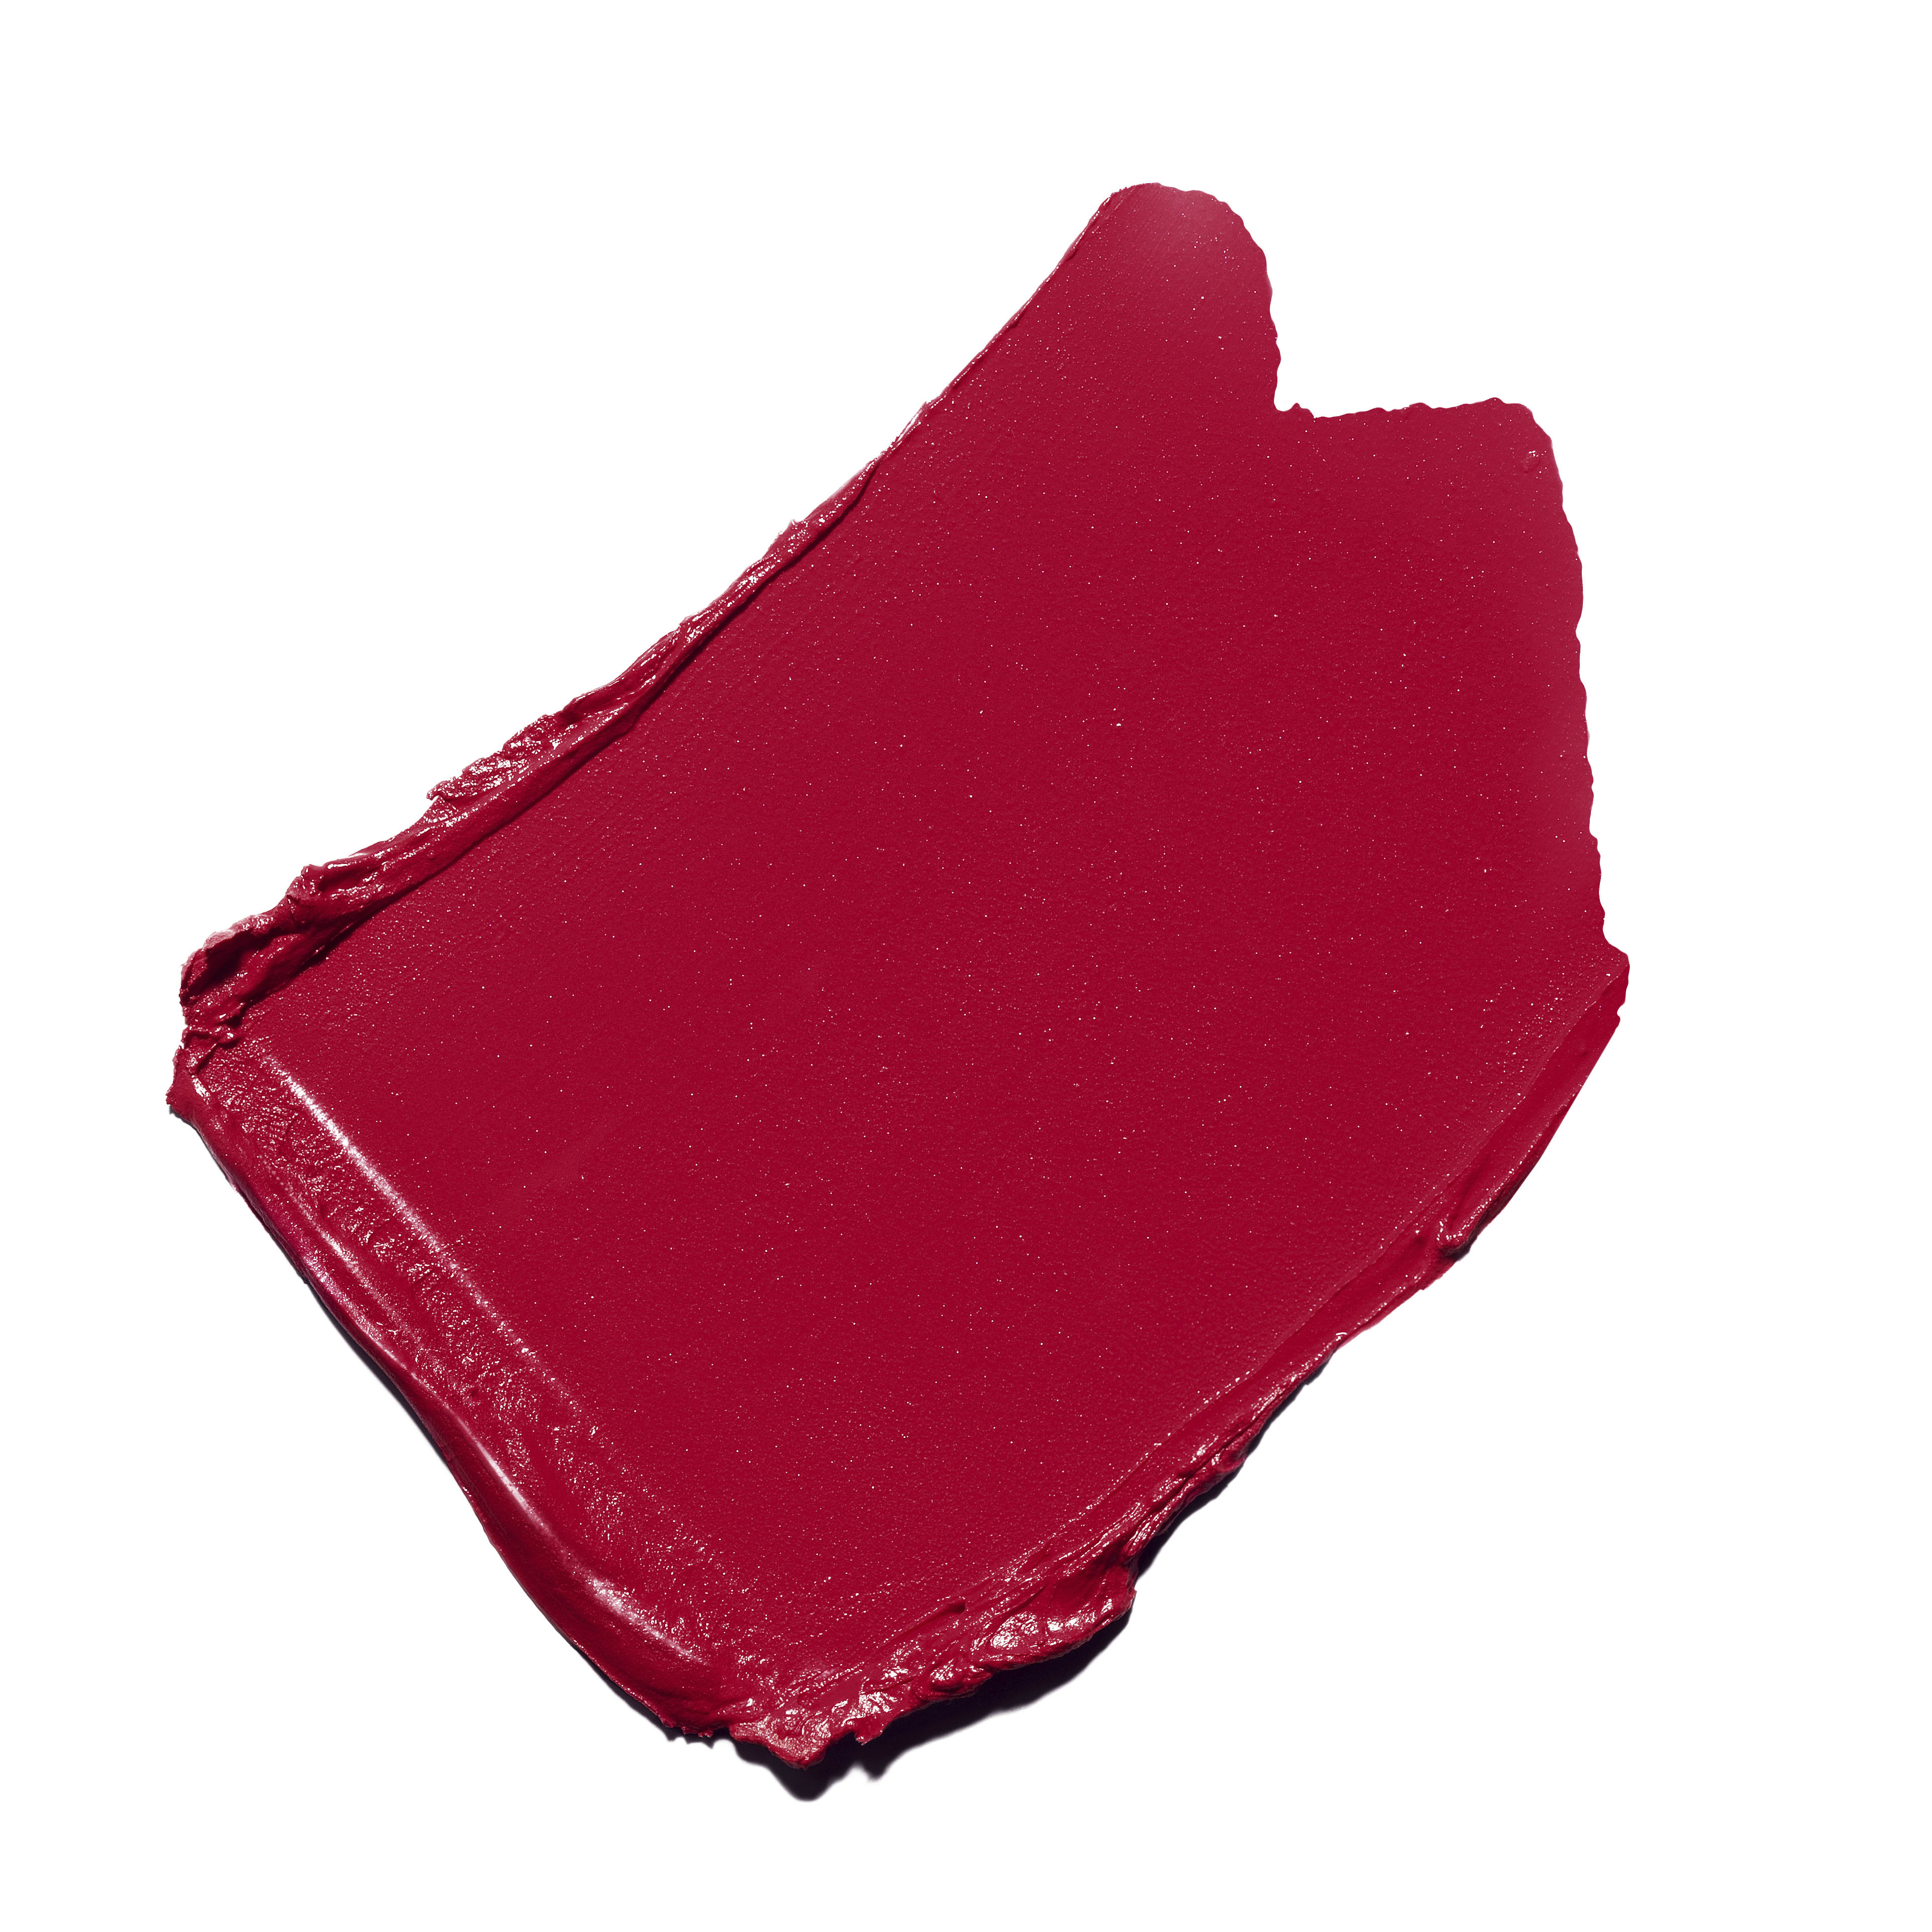 ROUGE ALLURE - makeup - 3.5g - Basic texture view